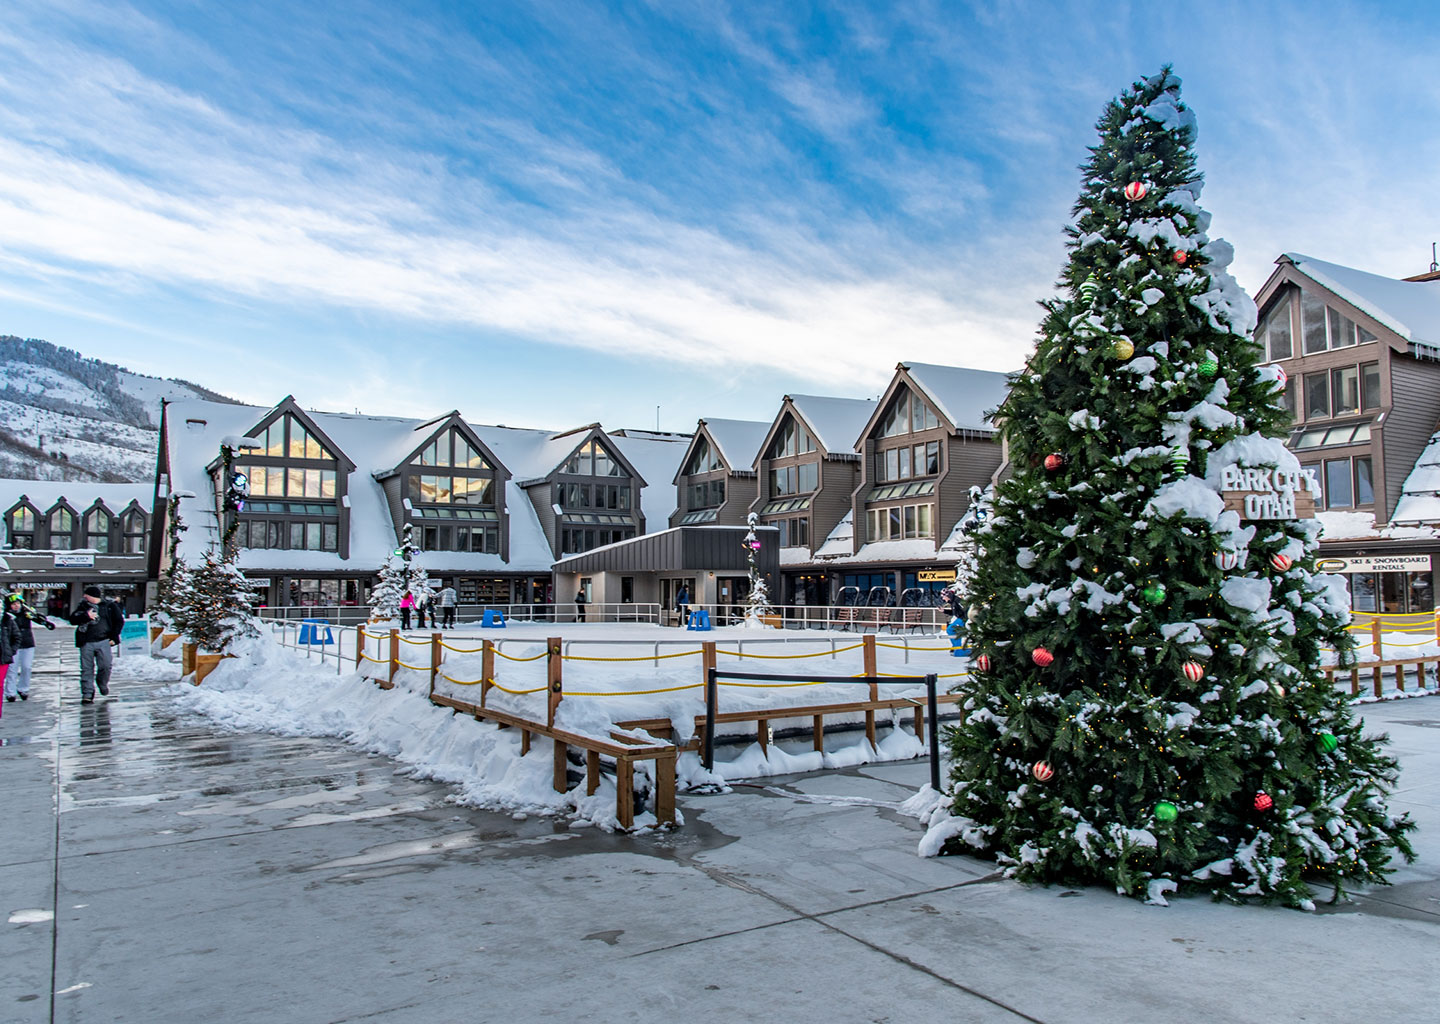 Ice Skating Rink in Winter at The Lodge at the Mountain Village in Park City, Utah